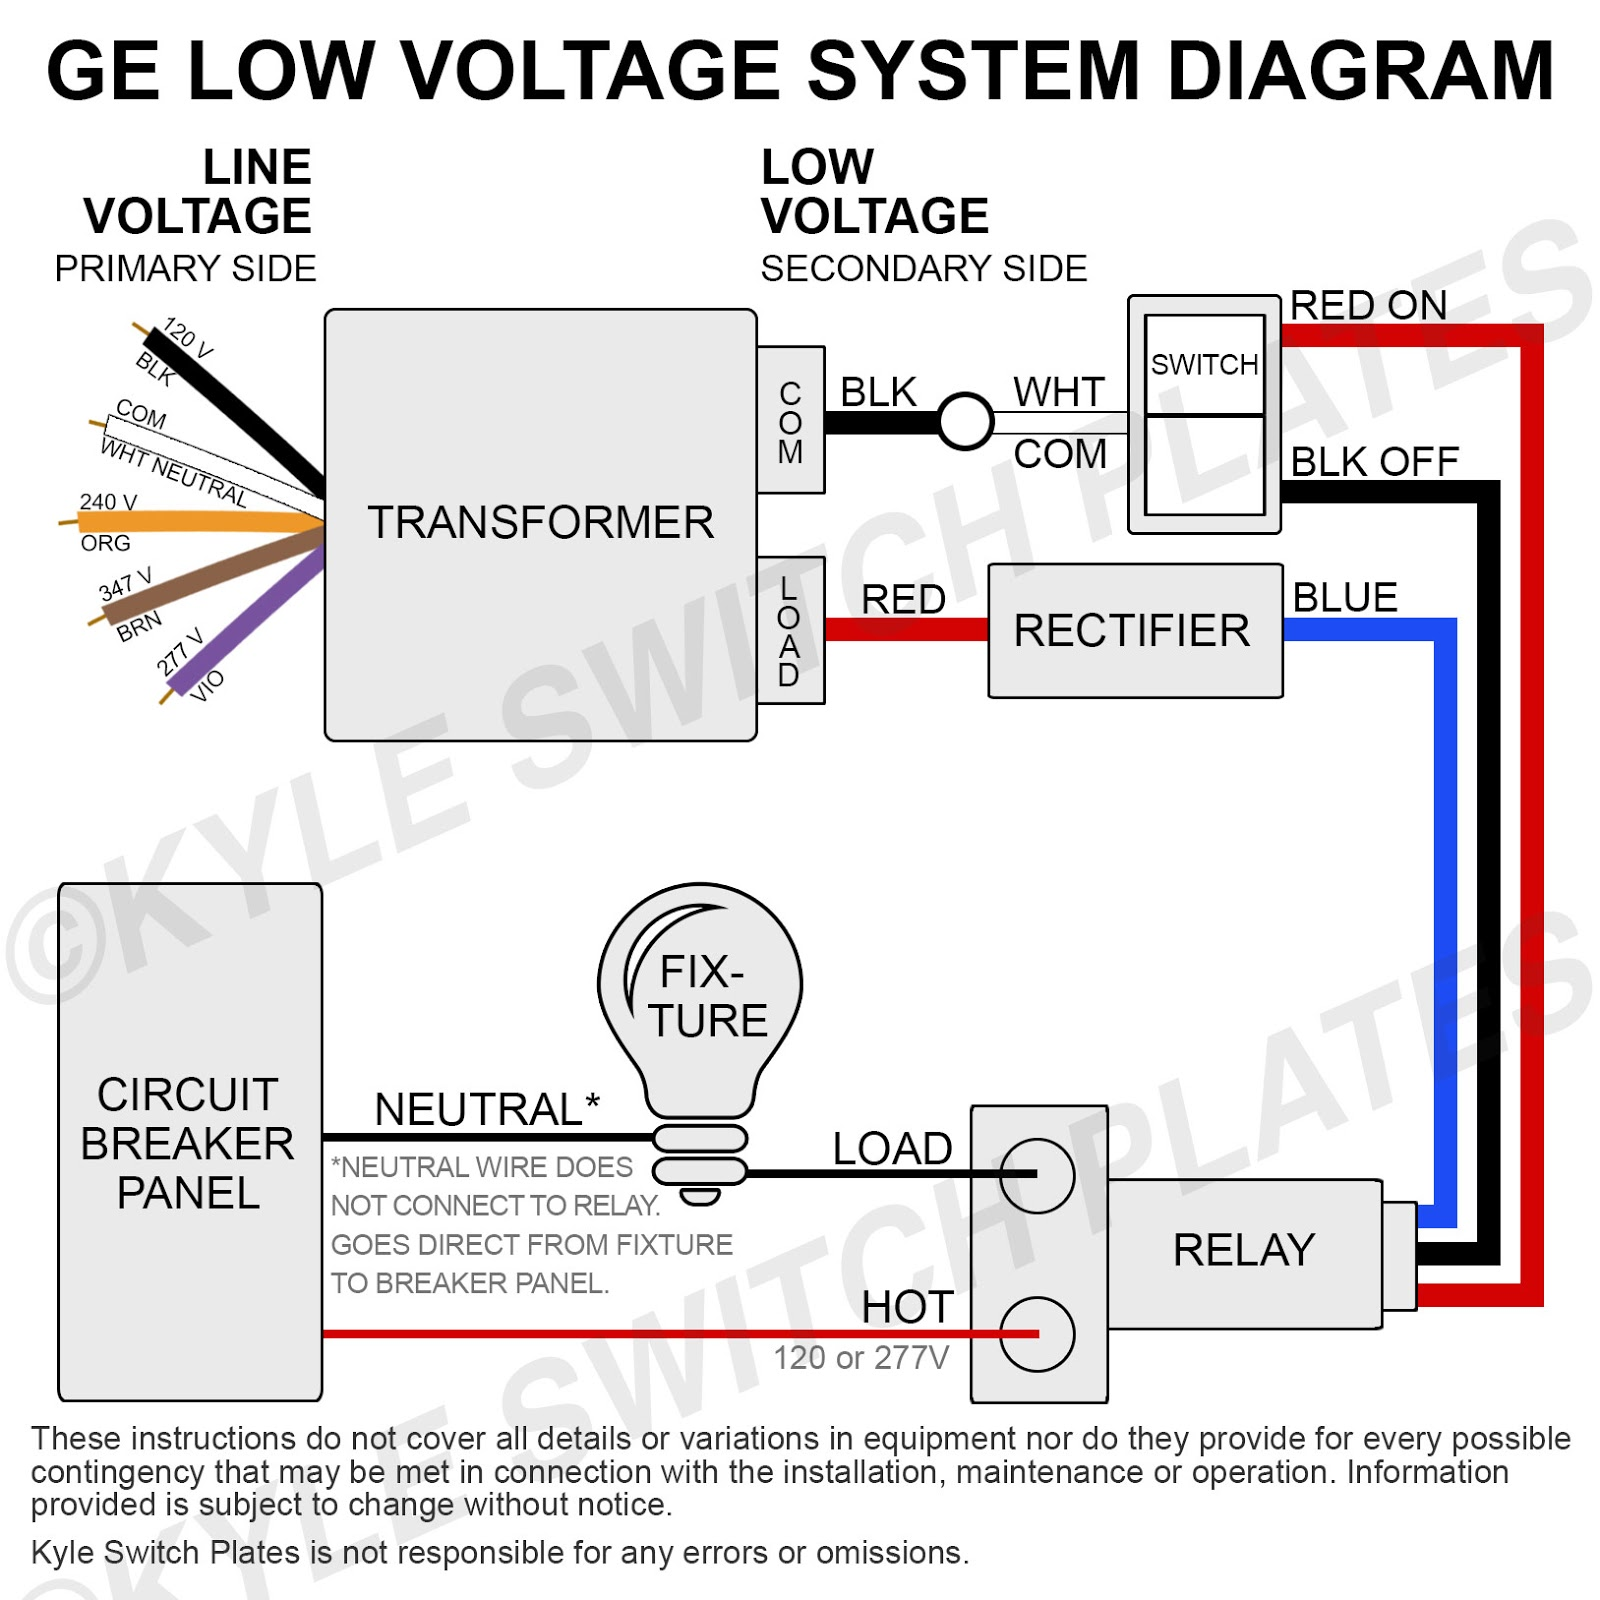 Kyle Switch Plates: New Replacement Parts for Residential GE Low Voltage  Lighting   Ge Rr3 Relay Wiring Diagram      Kyle Switch Plates